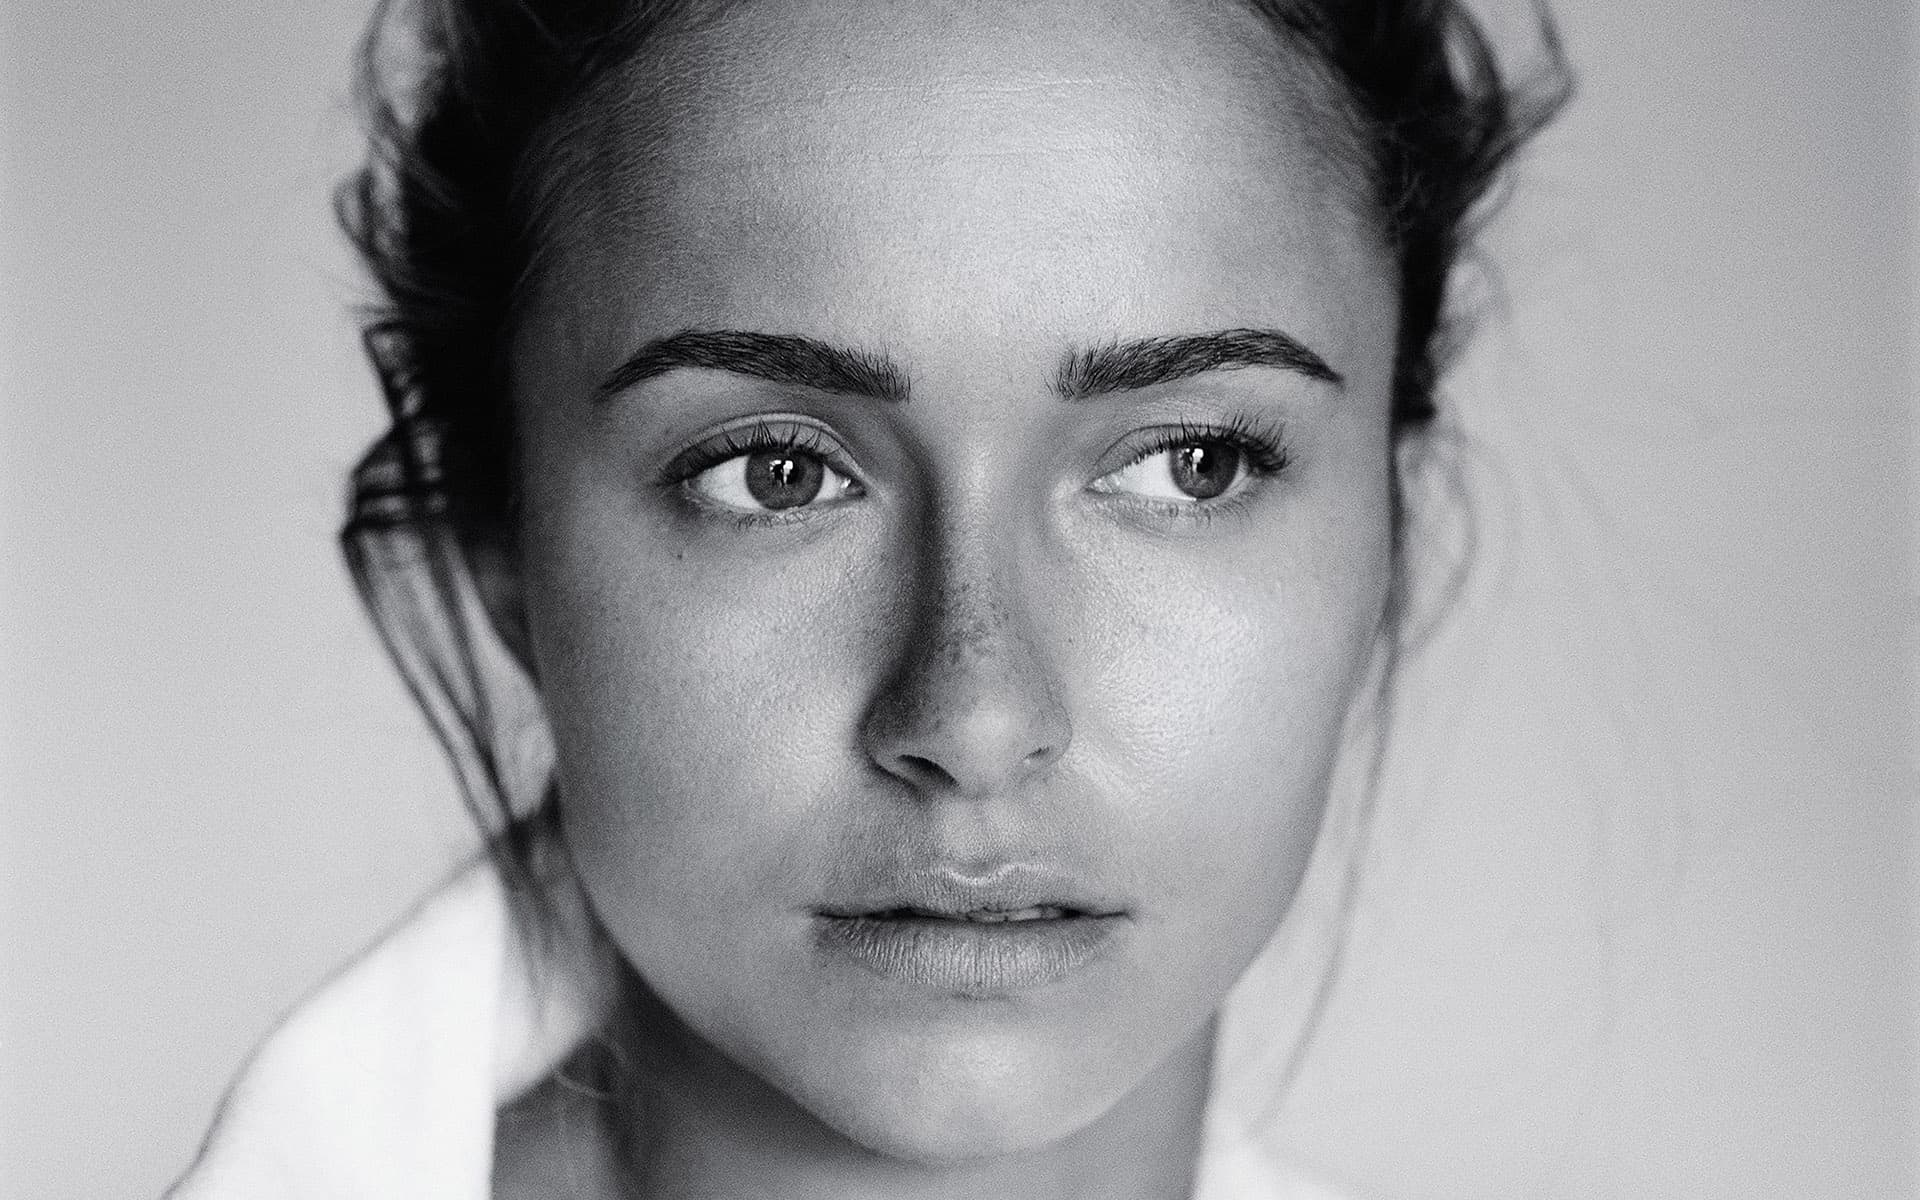 Hayden Leslie Panettiere Black And White picture, eyes